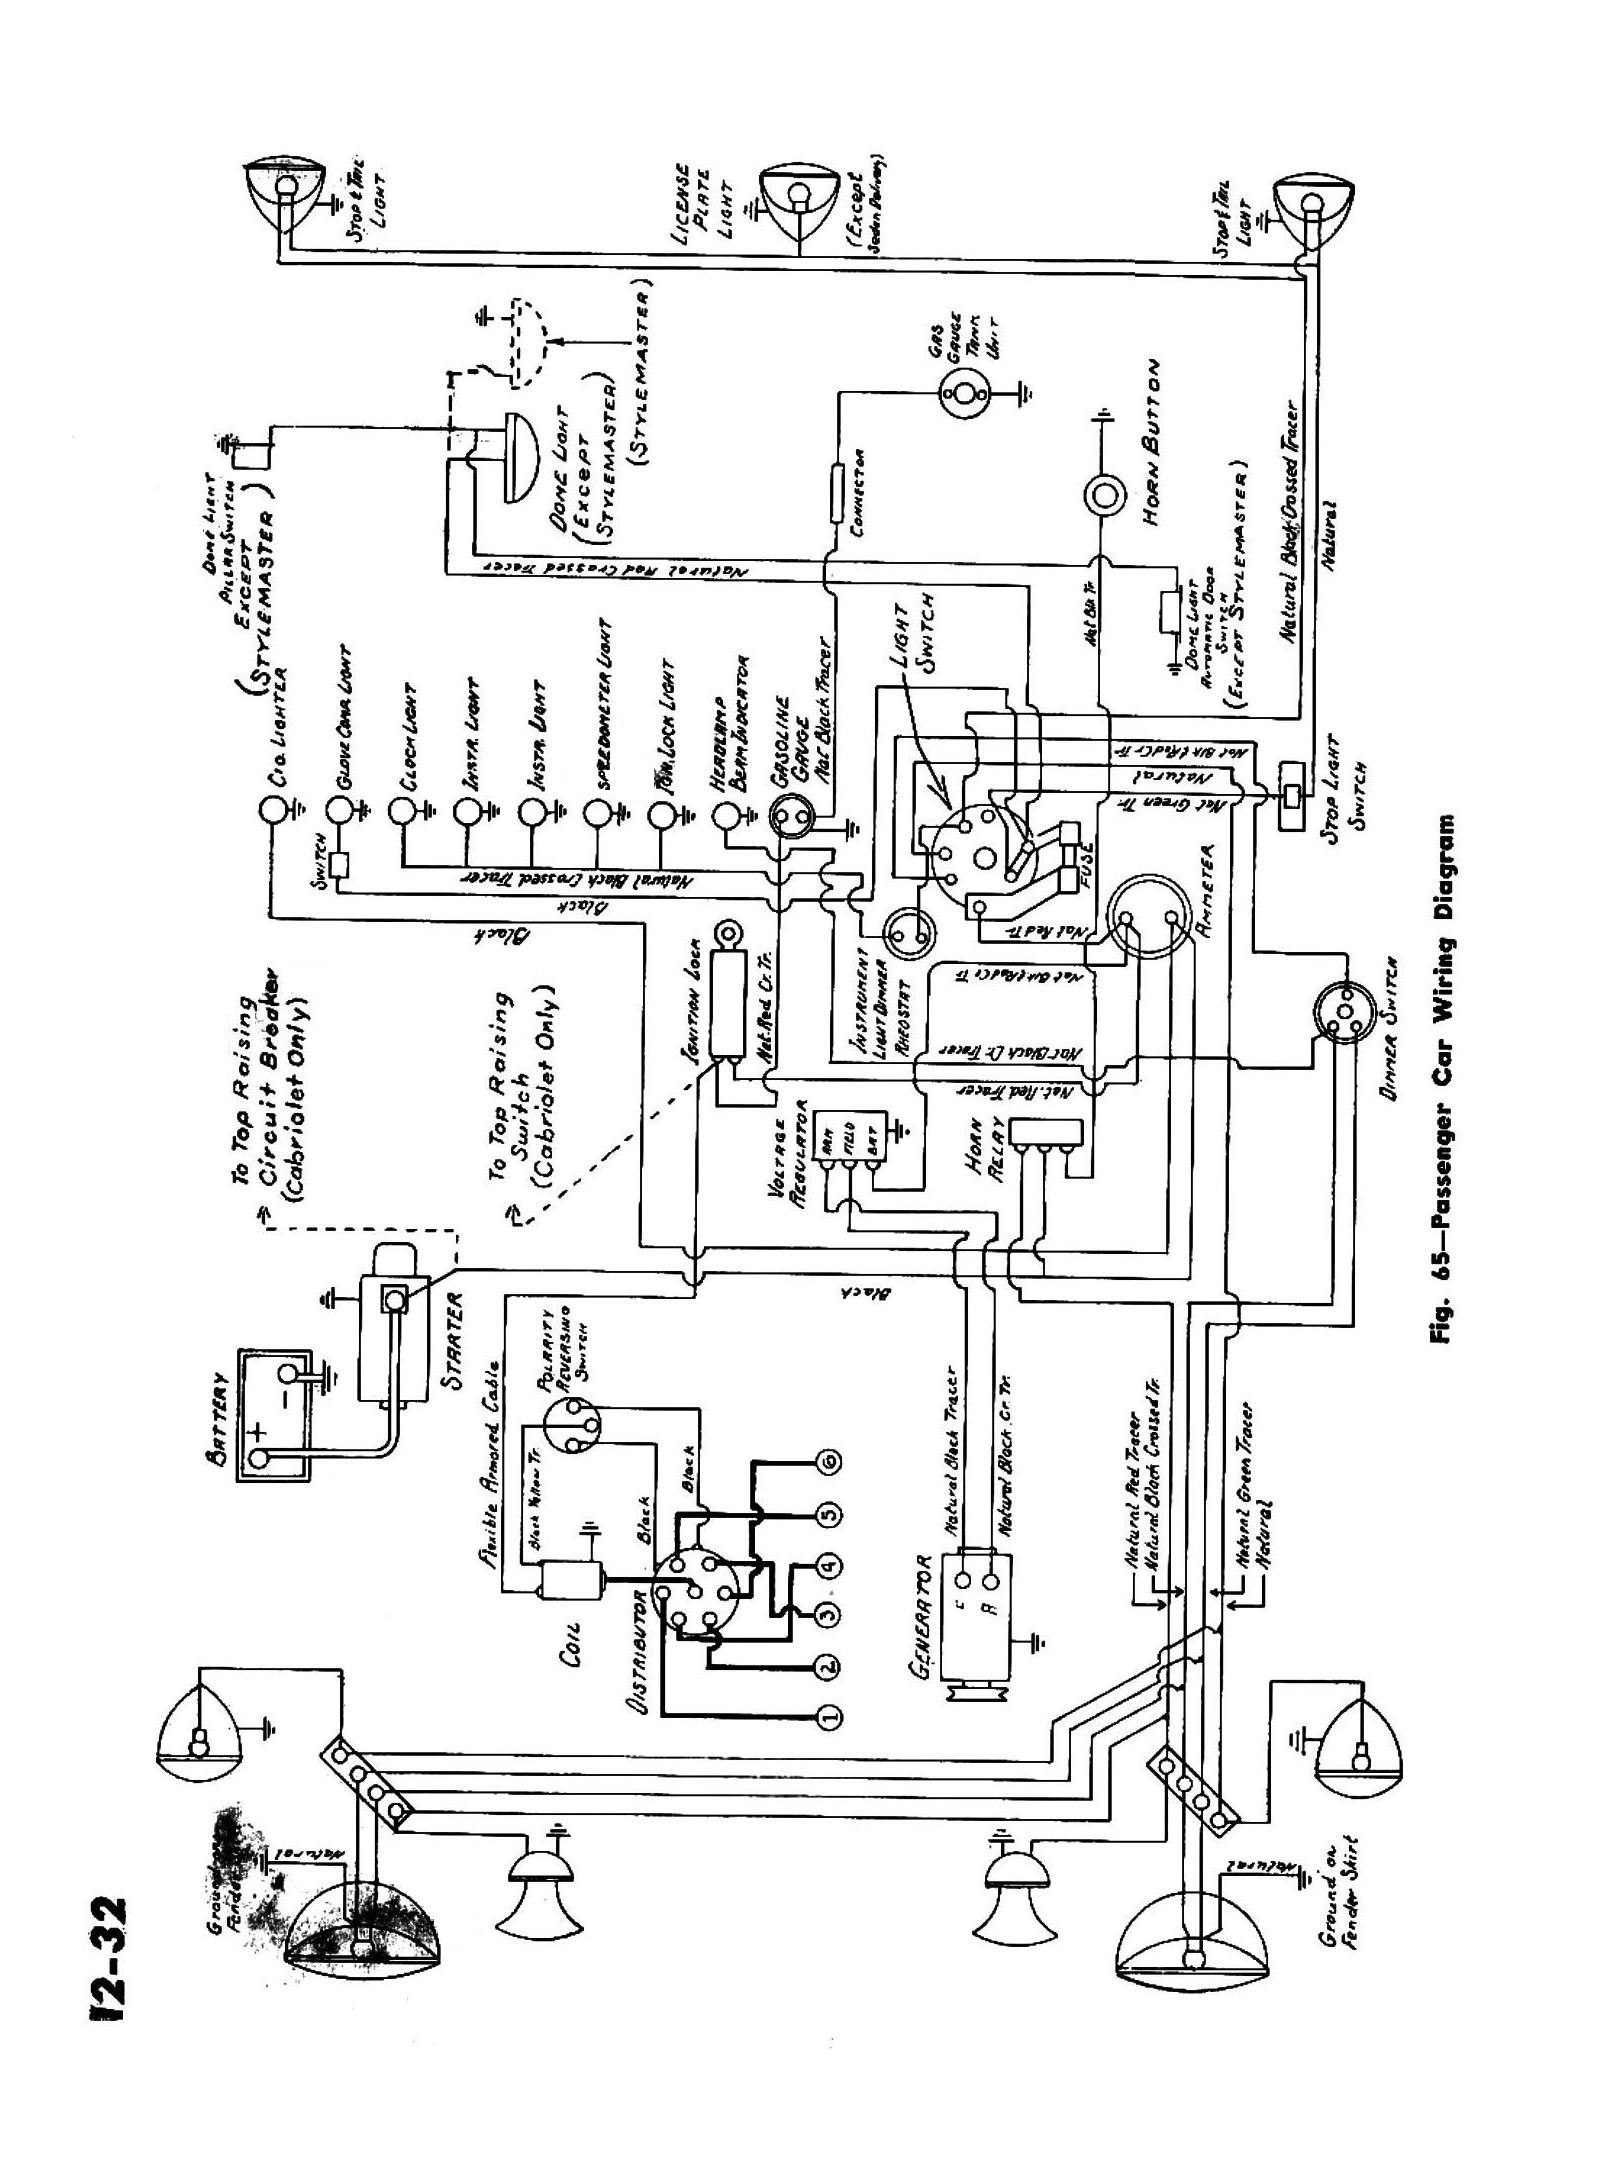 American Auto Wire Diagrams Wiring Diagram Universal Blogcustom Car Harness Library